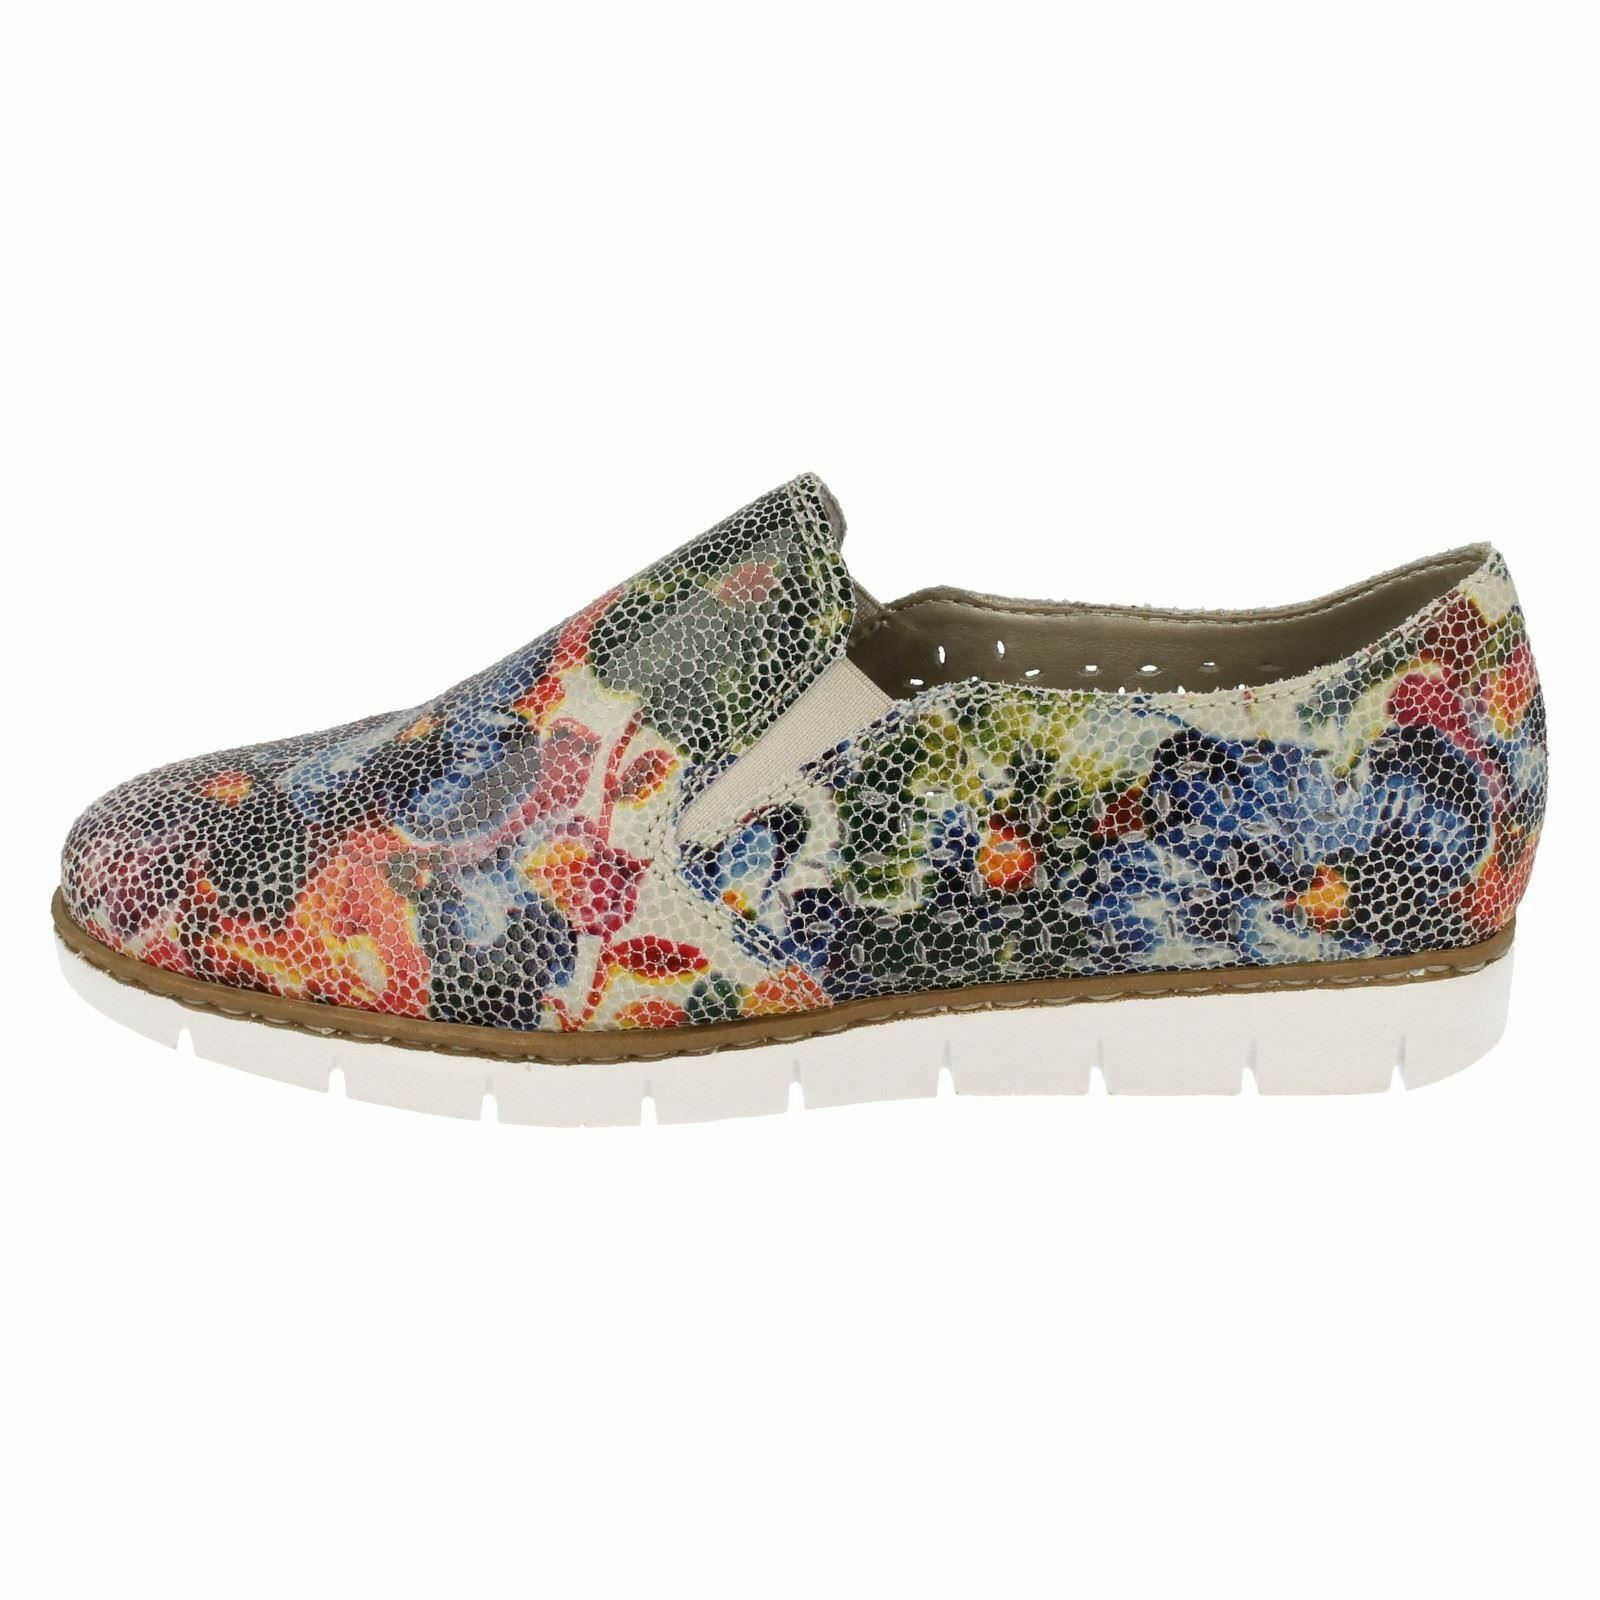 Ladies Rieker M1356 M1356 M1356 Multi-Colour Pattern Leather Casual Slip On shoes 249bee